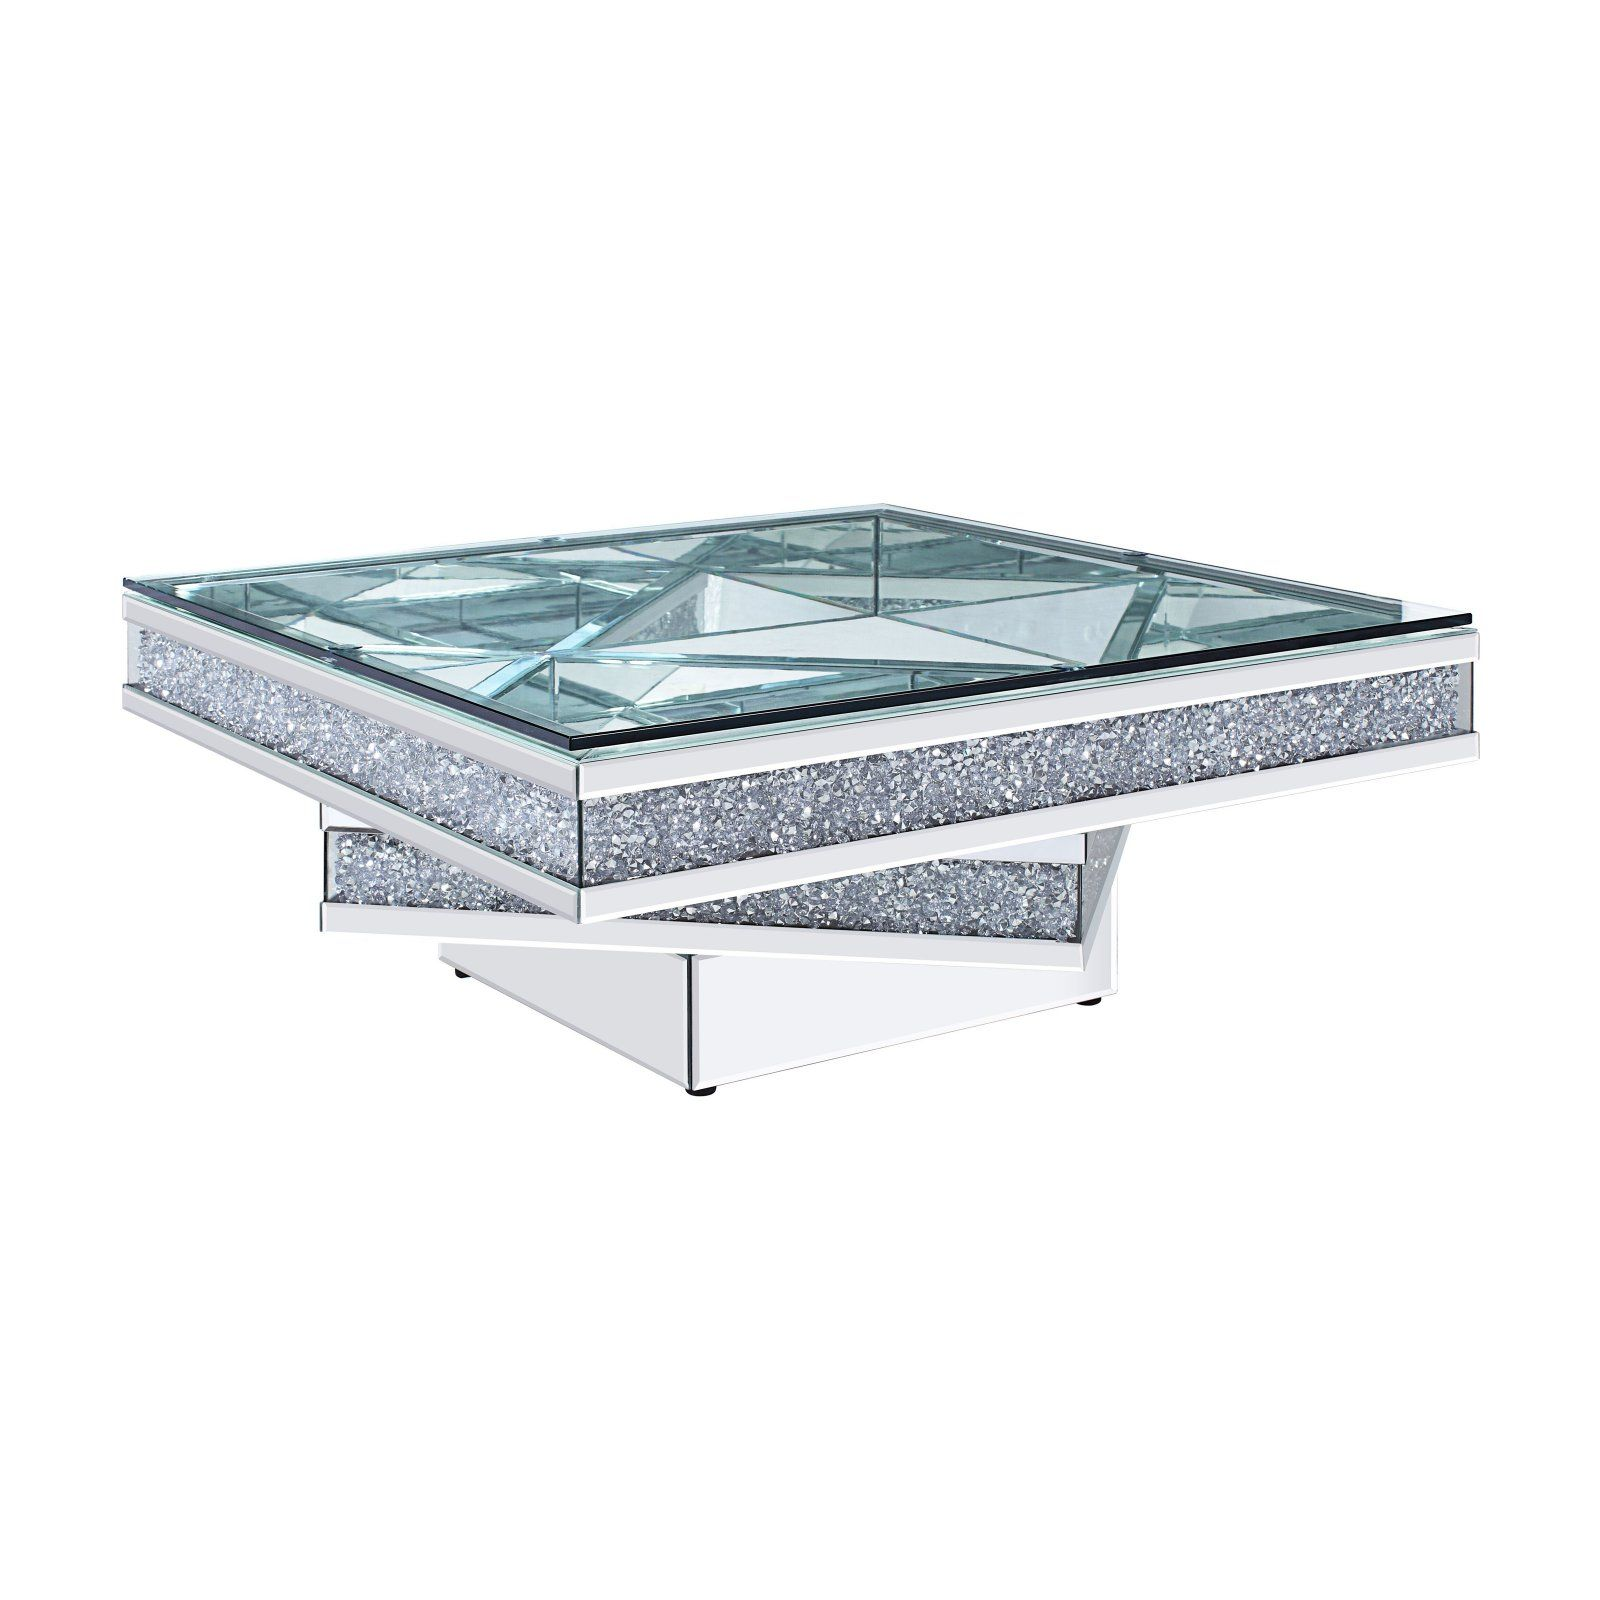 Acme Furniture Noralie Square 3 Tier Coffee Table Coffee Table